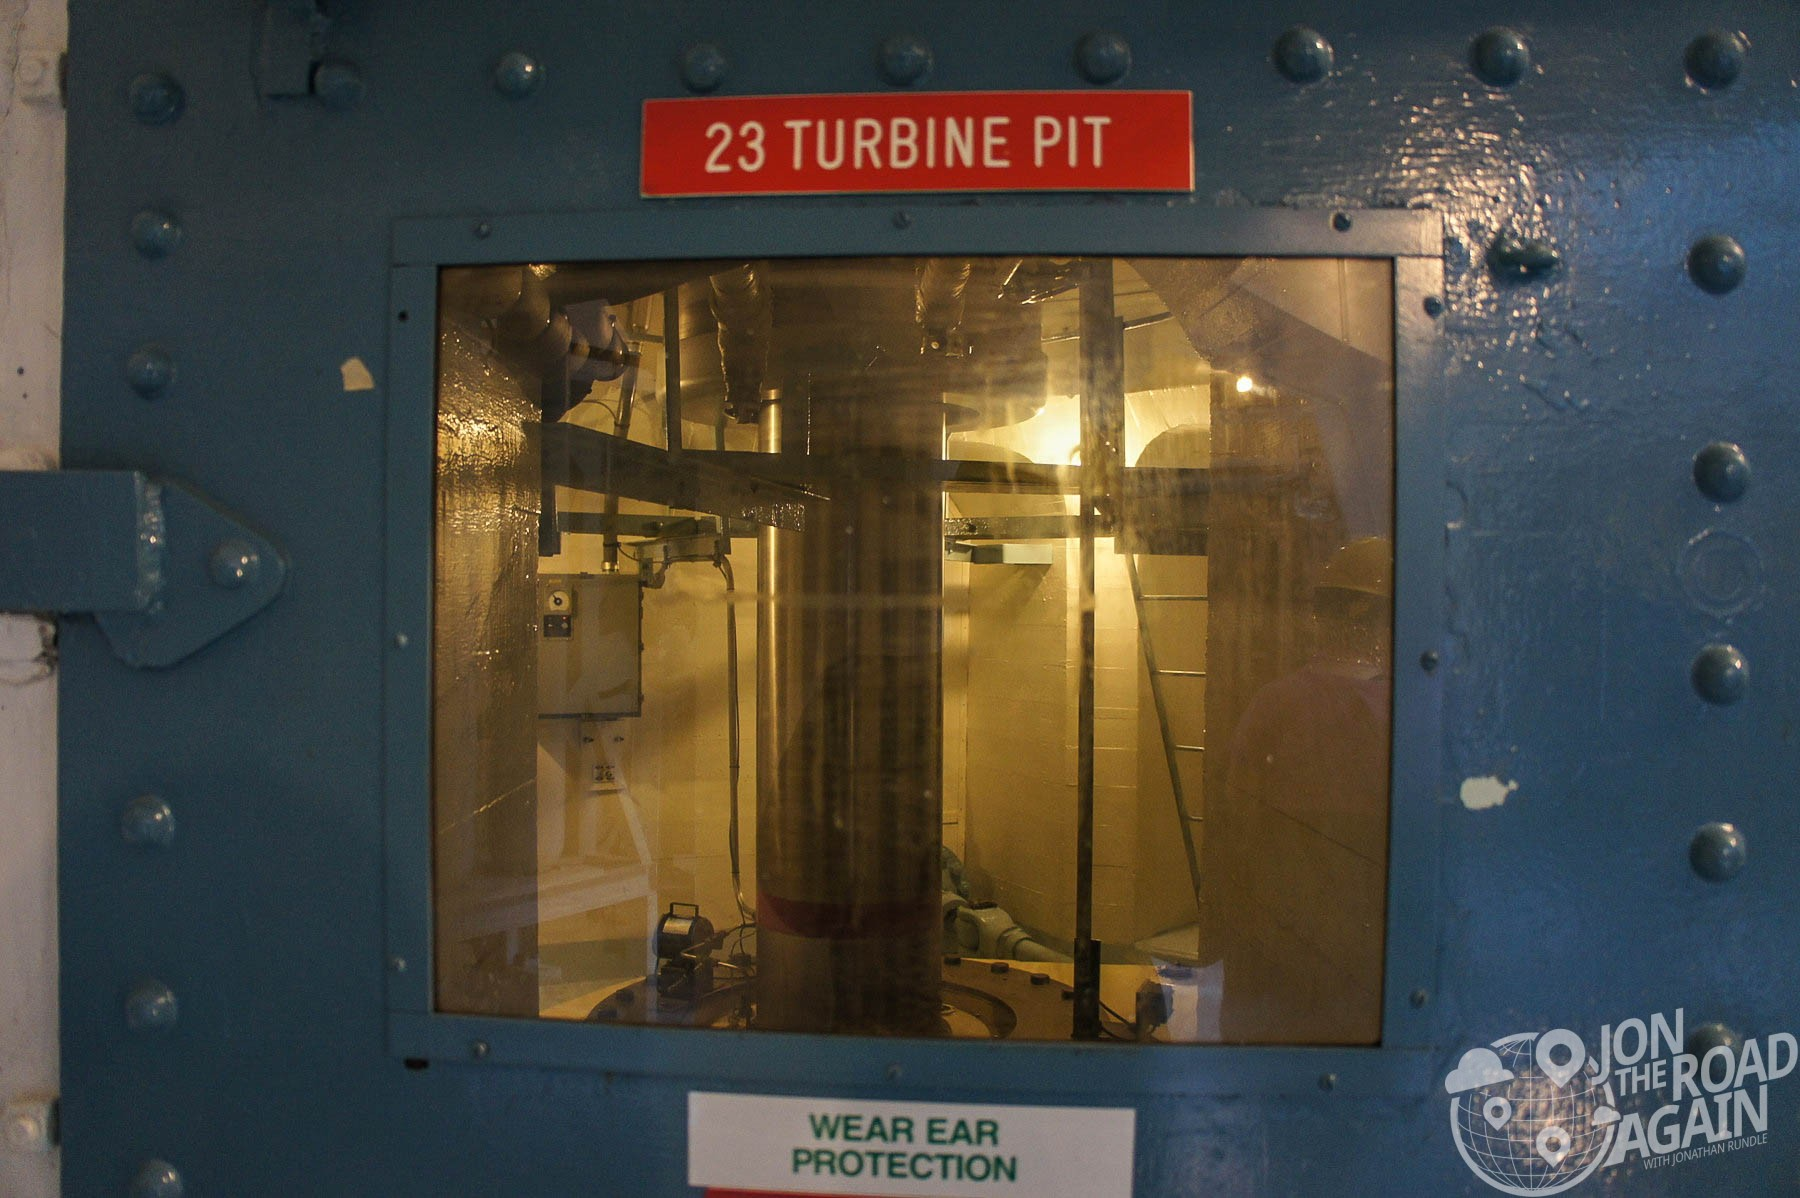 A peek at the turbine shaft